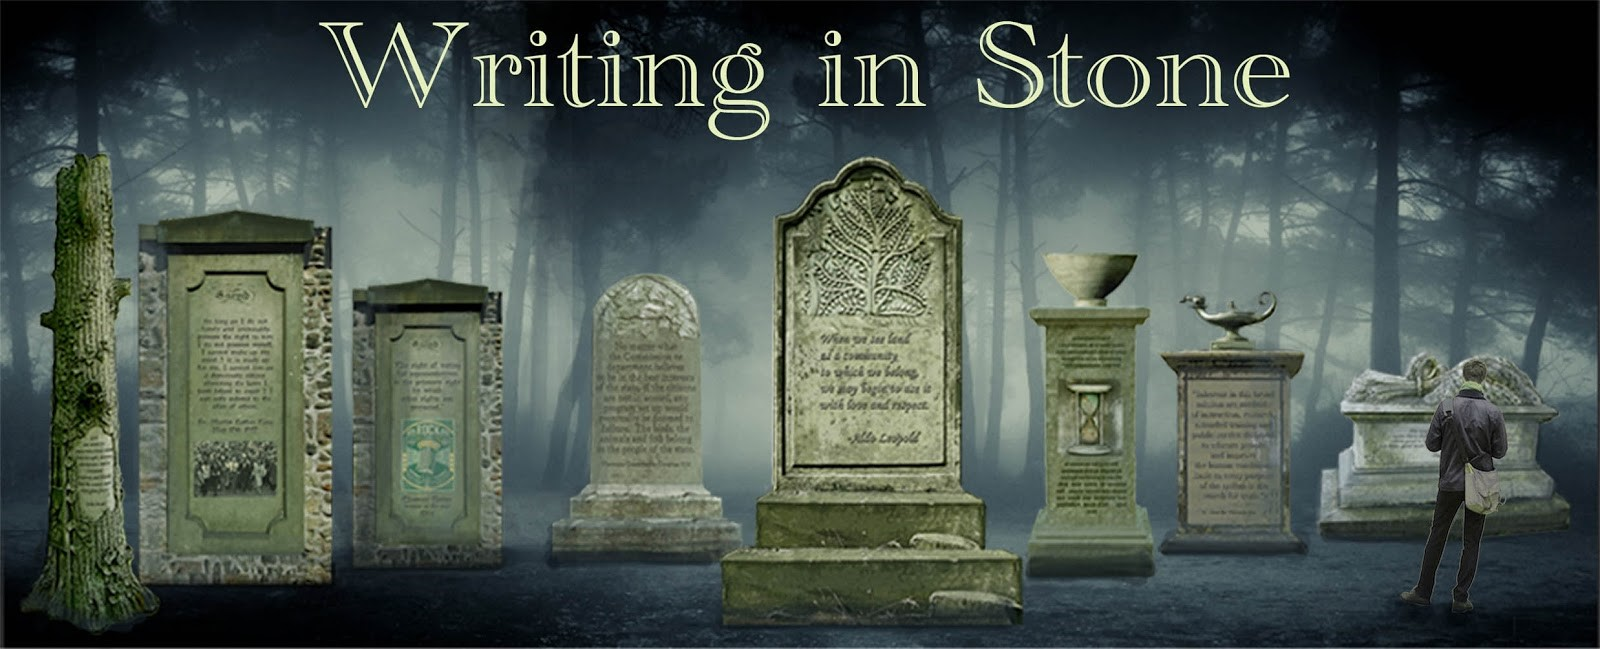 Writing in Stone, Terese Agnew